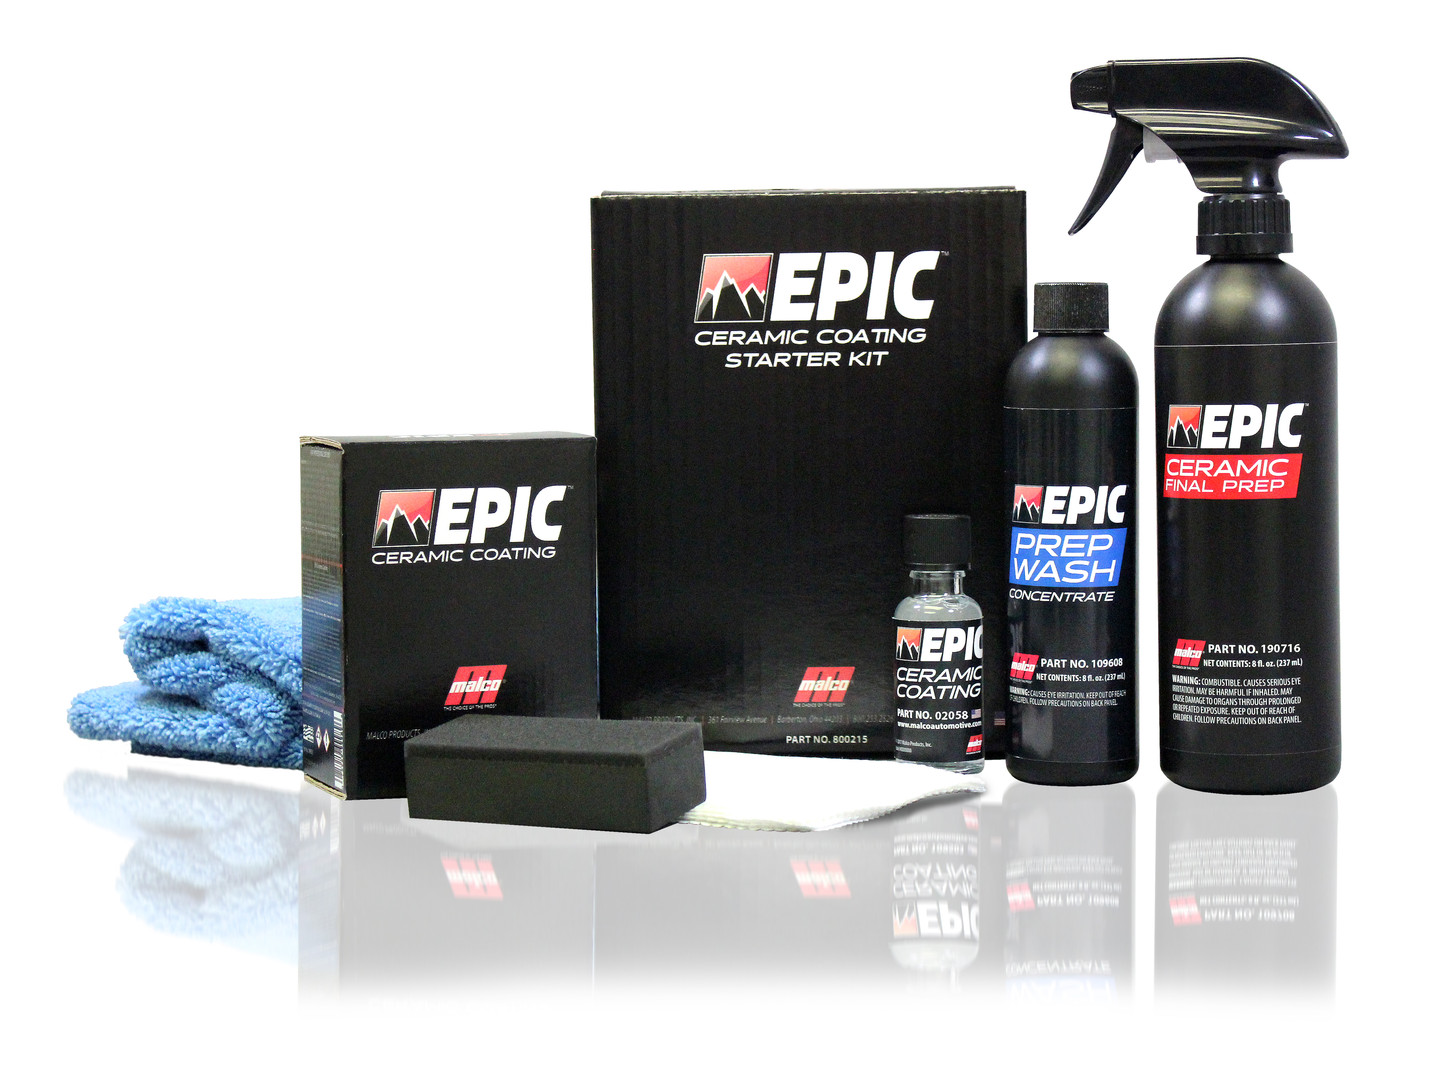 800215 EPIC Ceramic Kit FOR WEB.jpg